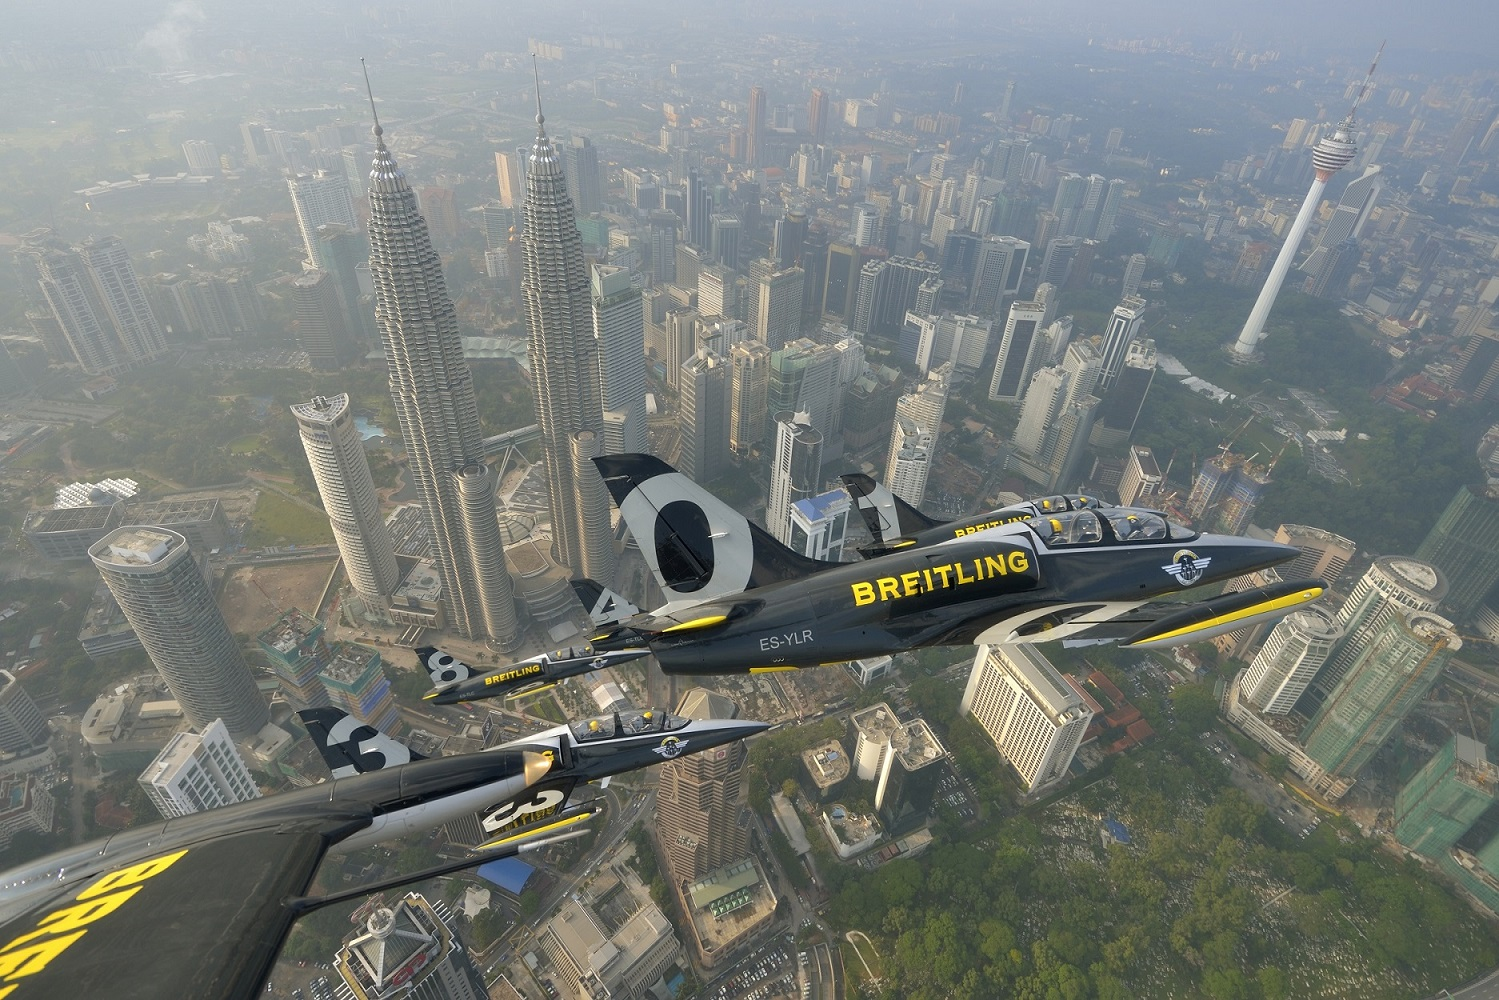 Breitling Jet Team in Malaysia ( Image Credit Tokunaga)